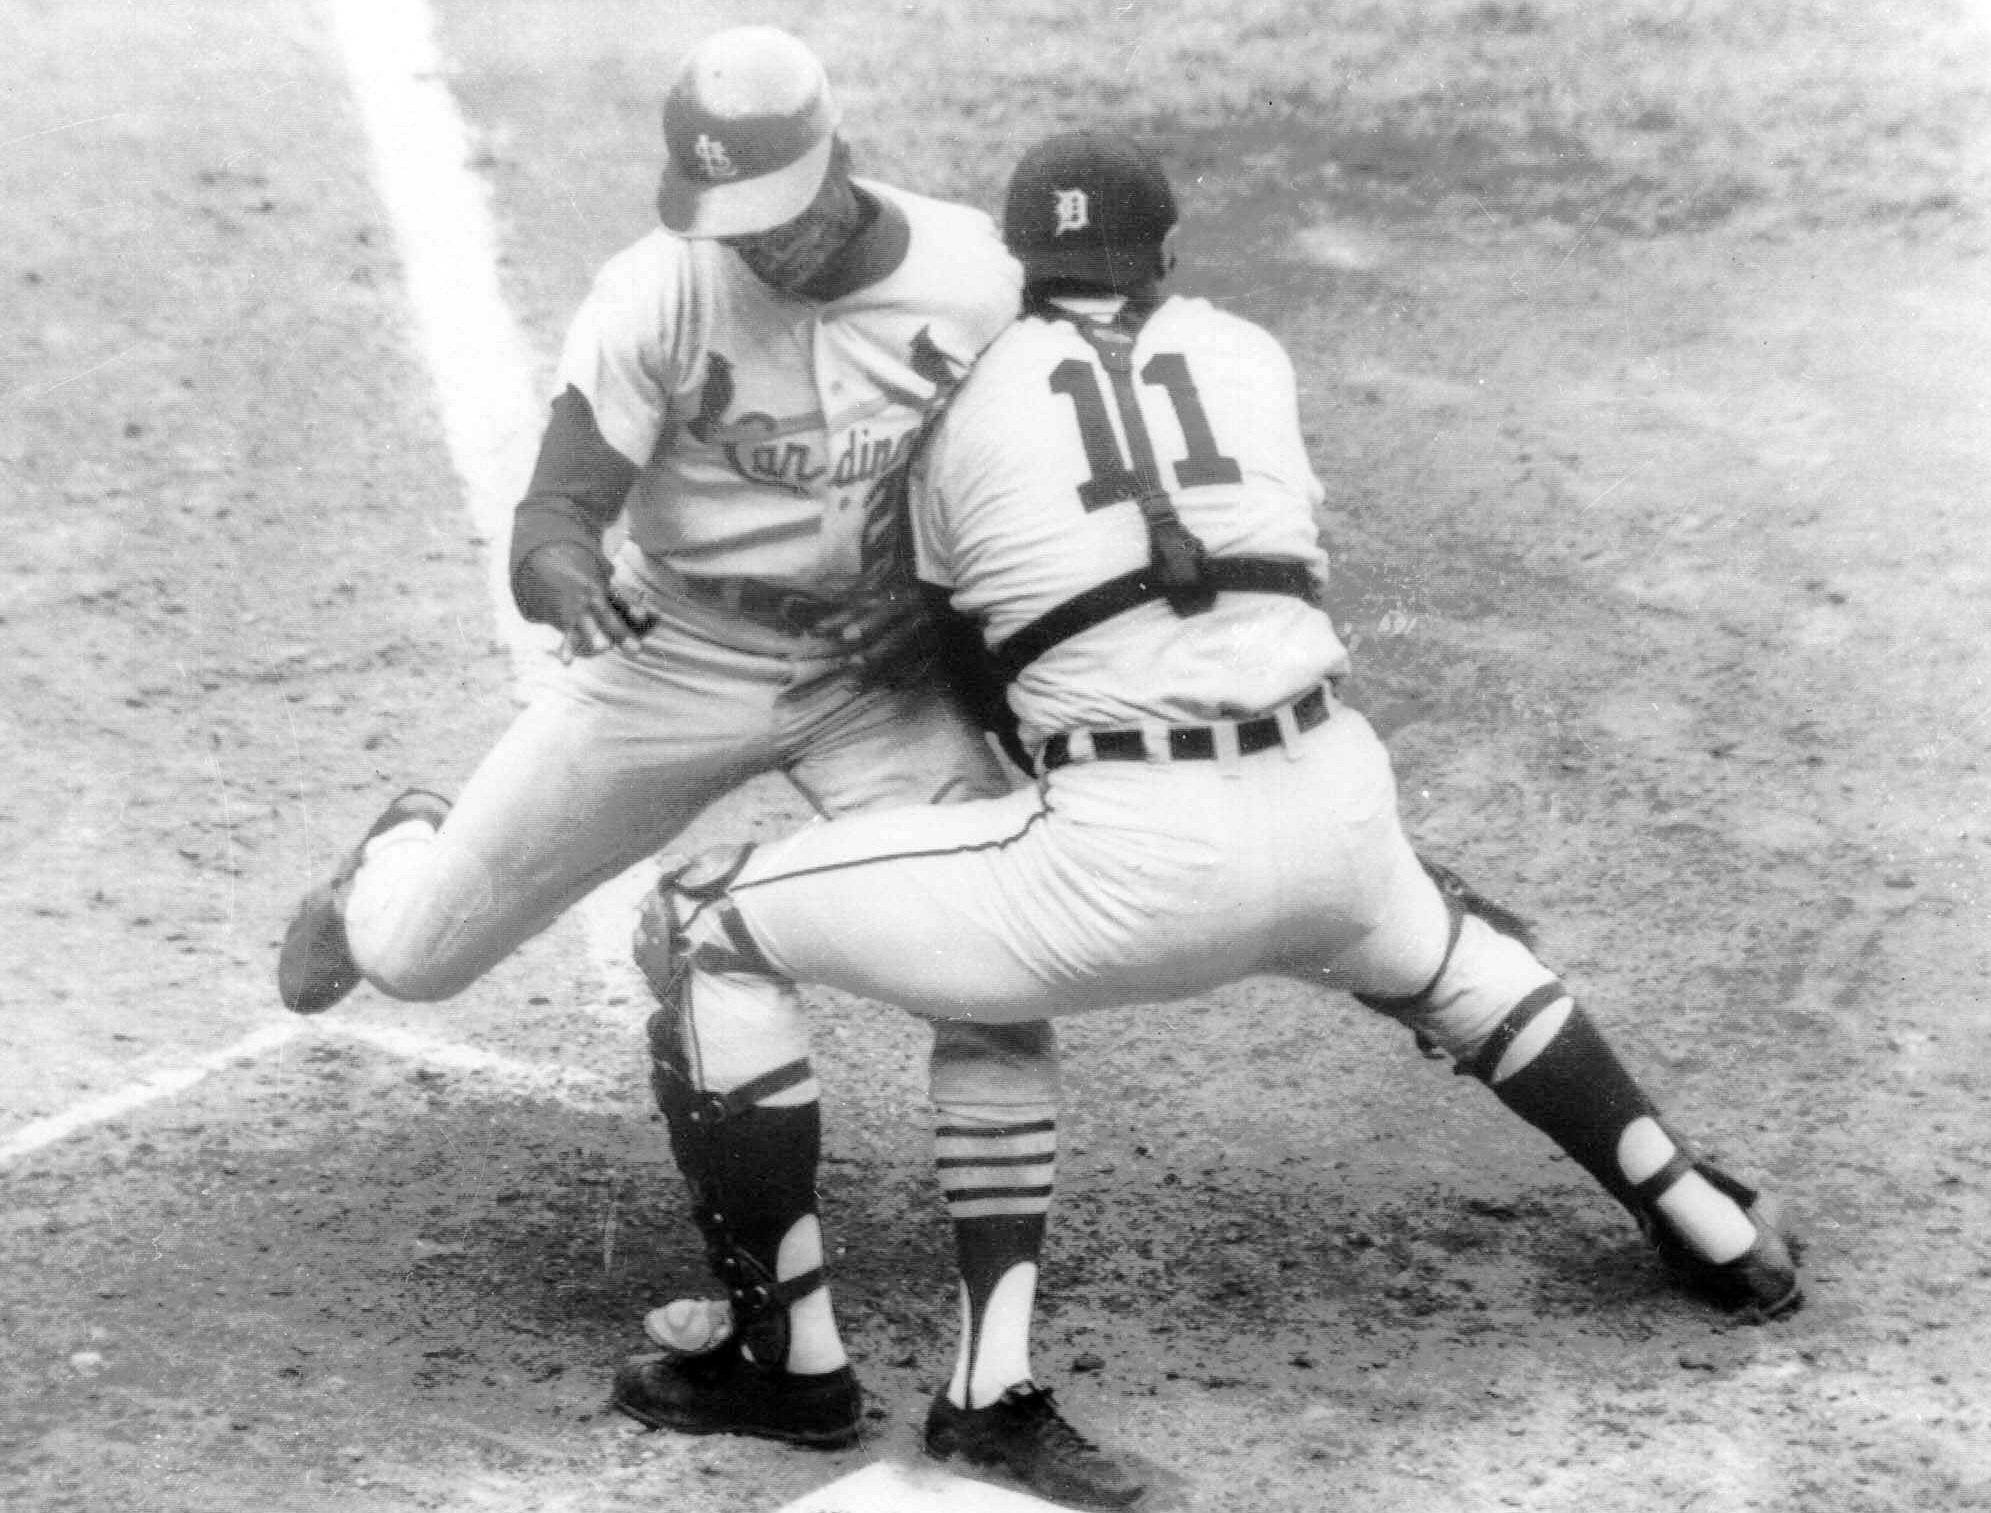 Tigers catcher Bill Freehan puts the tag on Cardinals outfielder Lou Brock on Oct. 7, 1968, at the plate in the fifth inning of Game 5 of World Series at Tiger Stadium. Brock was attempting to score on Julian Javier' single to left, but Tigers Willie Horton fired to the plate in time.